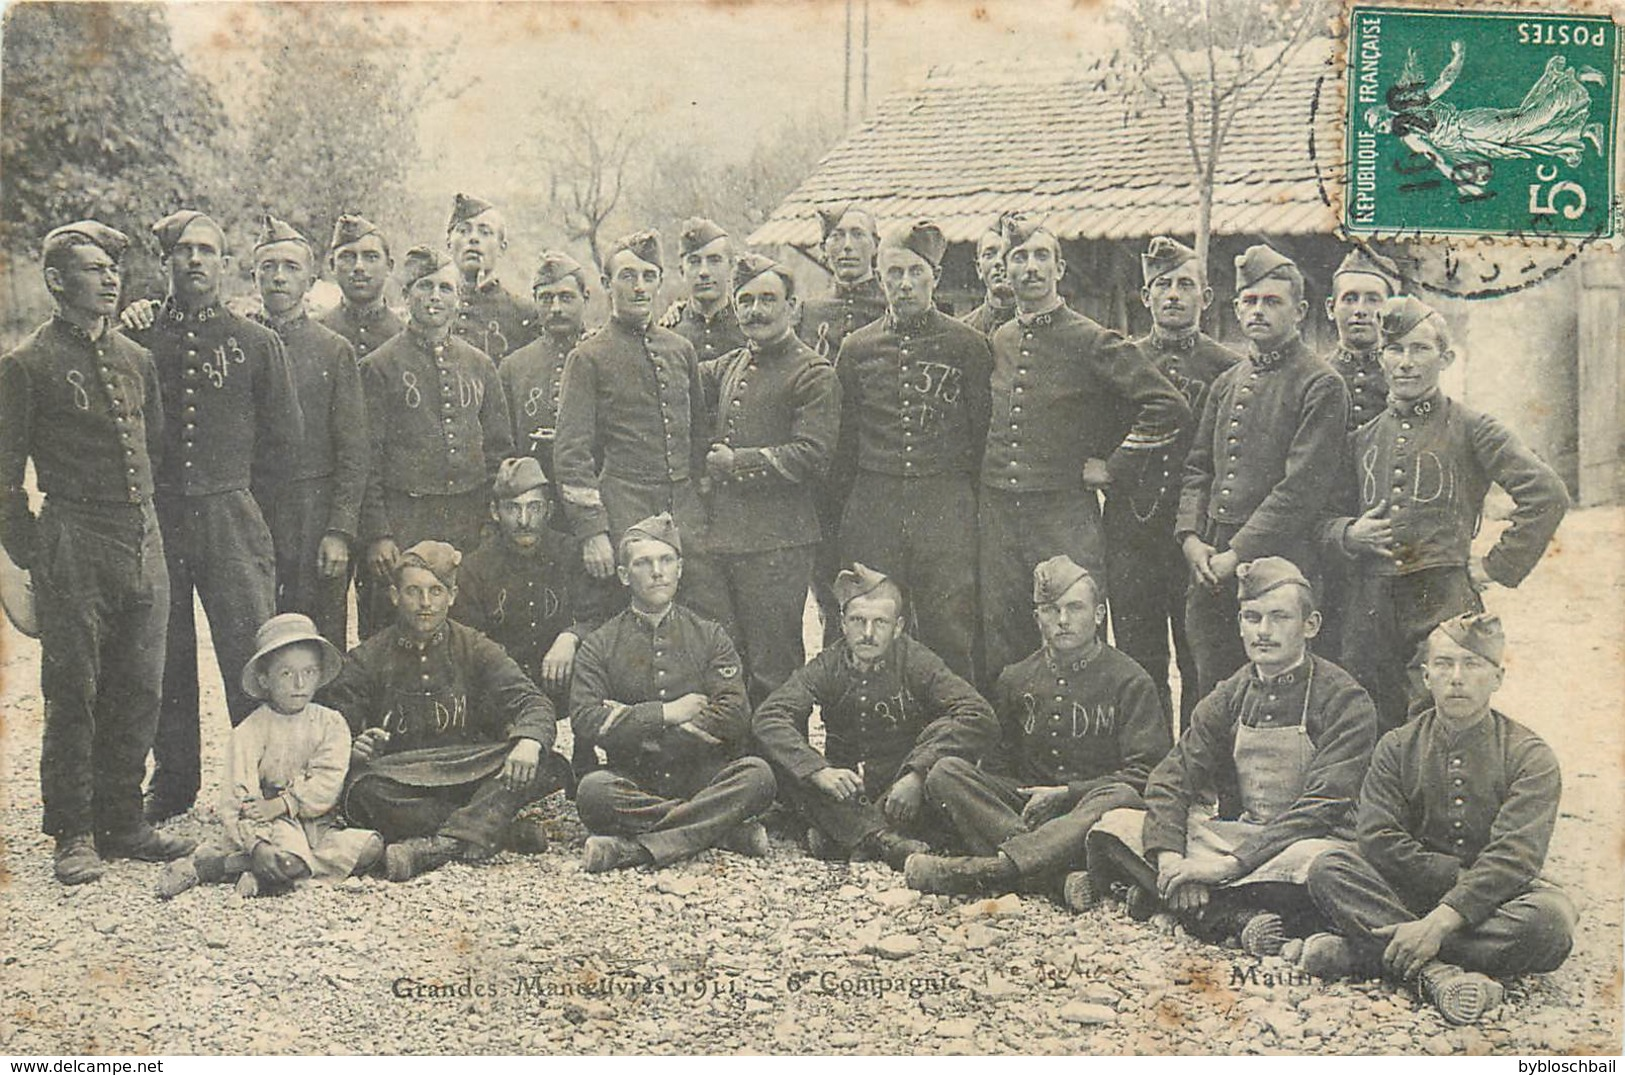 Grandes Manoeuvres 1911 6e Compagnie 1re Section Soldats DM 378 8 Militaria - Manovre